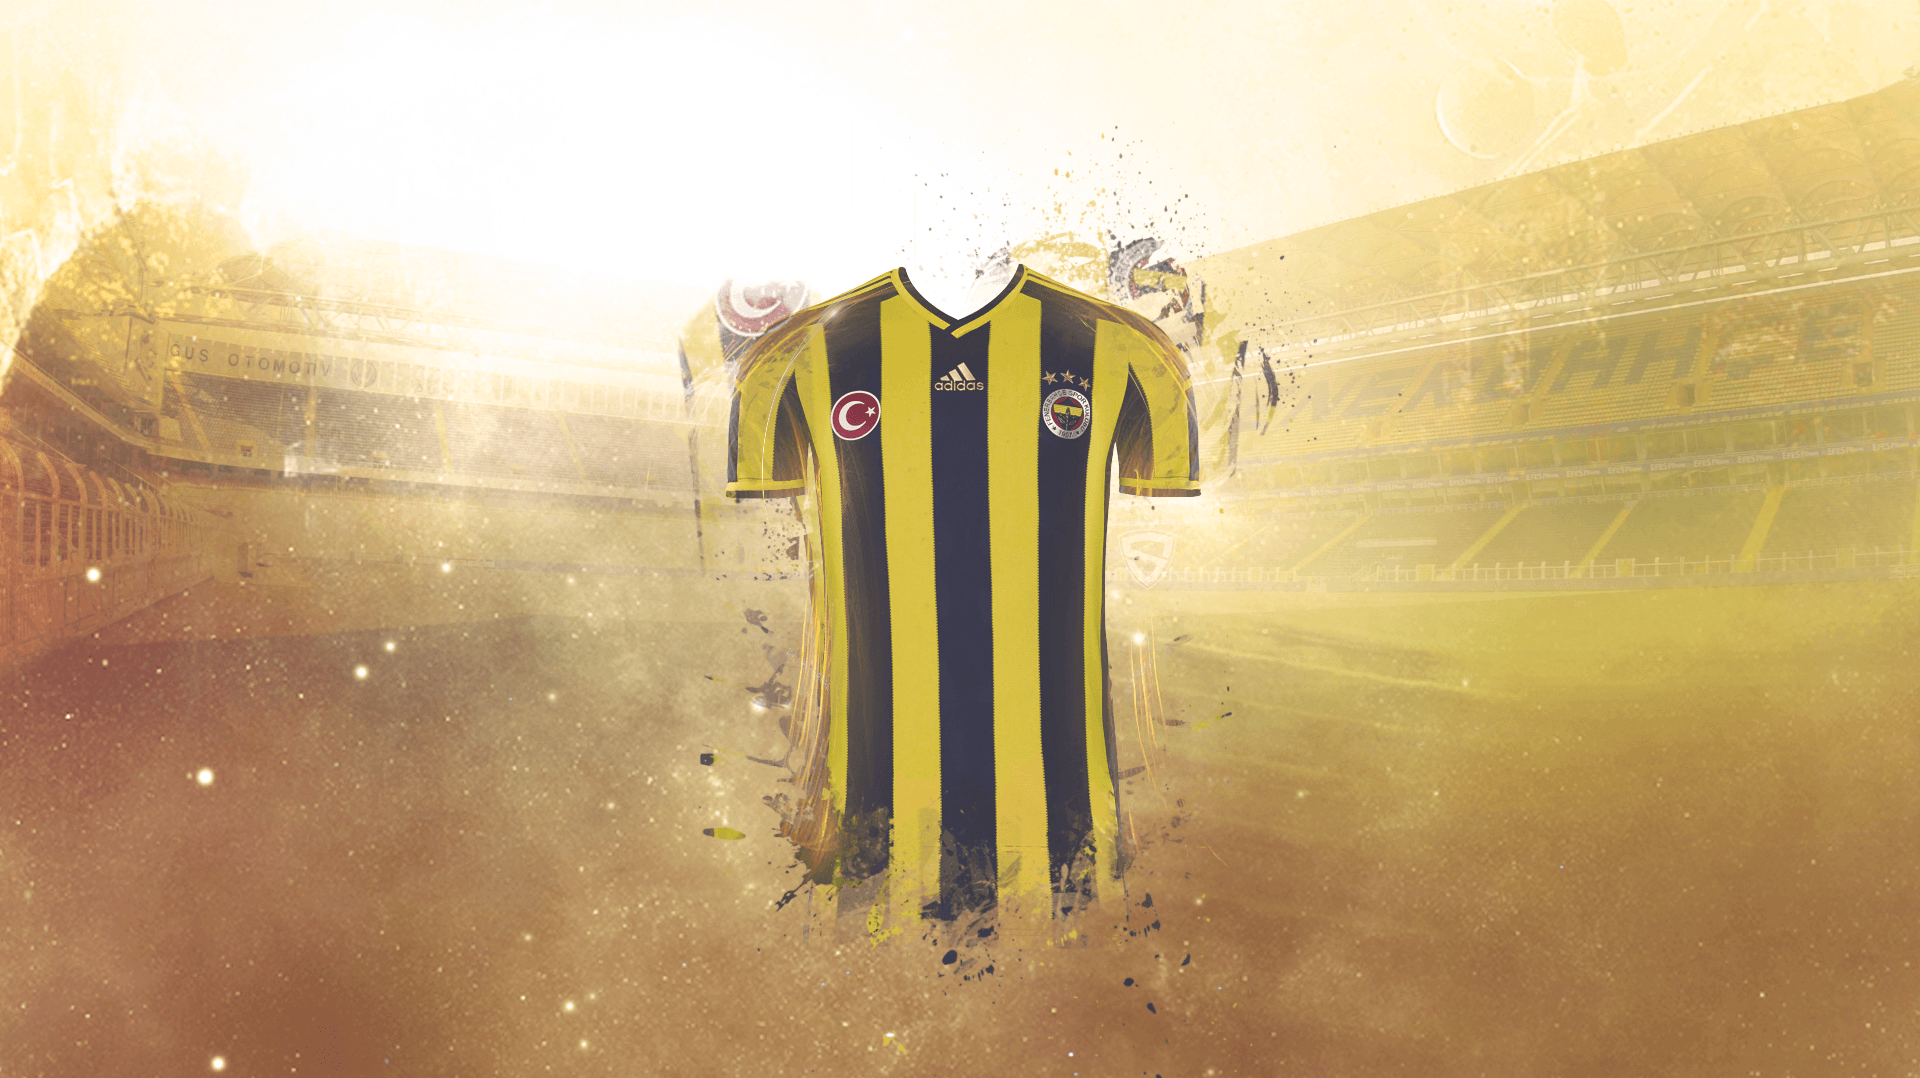 Fenerbahce SK Wallpaper by stragfx on DeviantArt